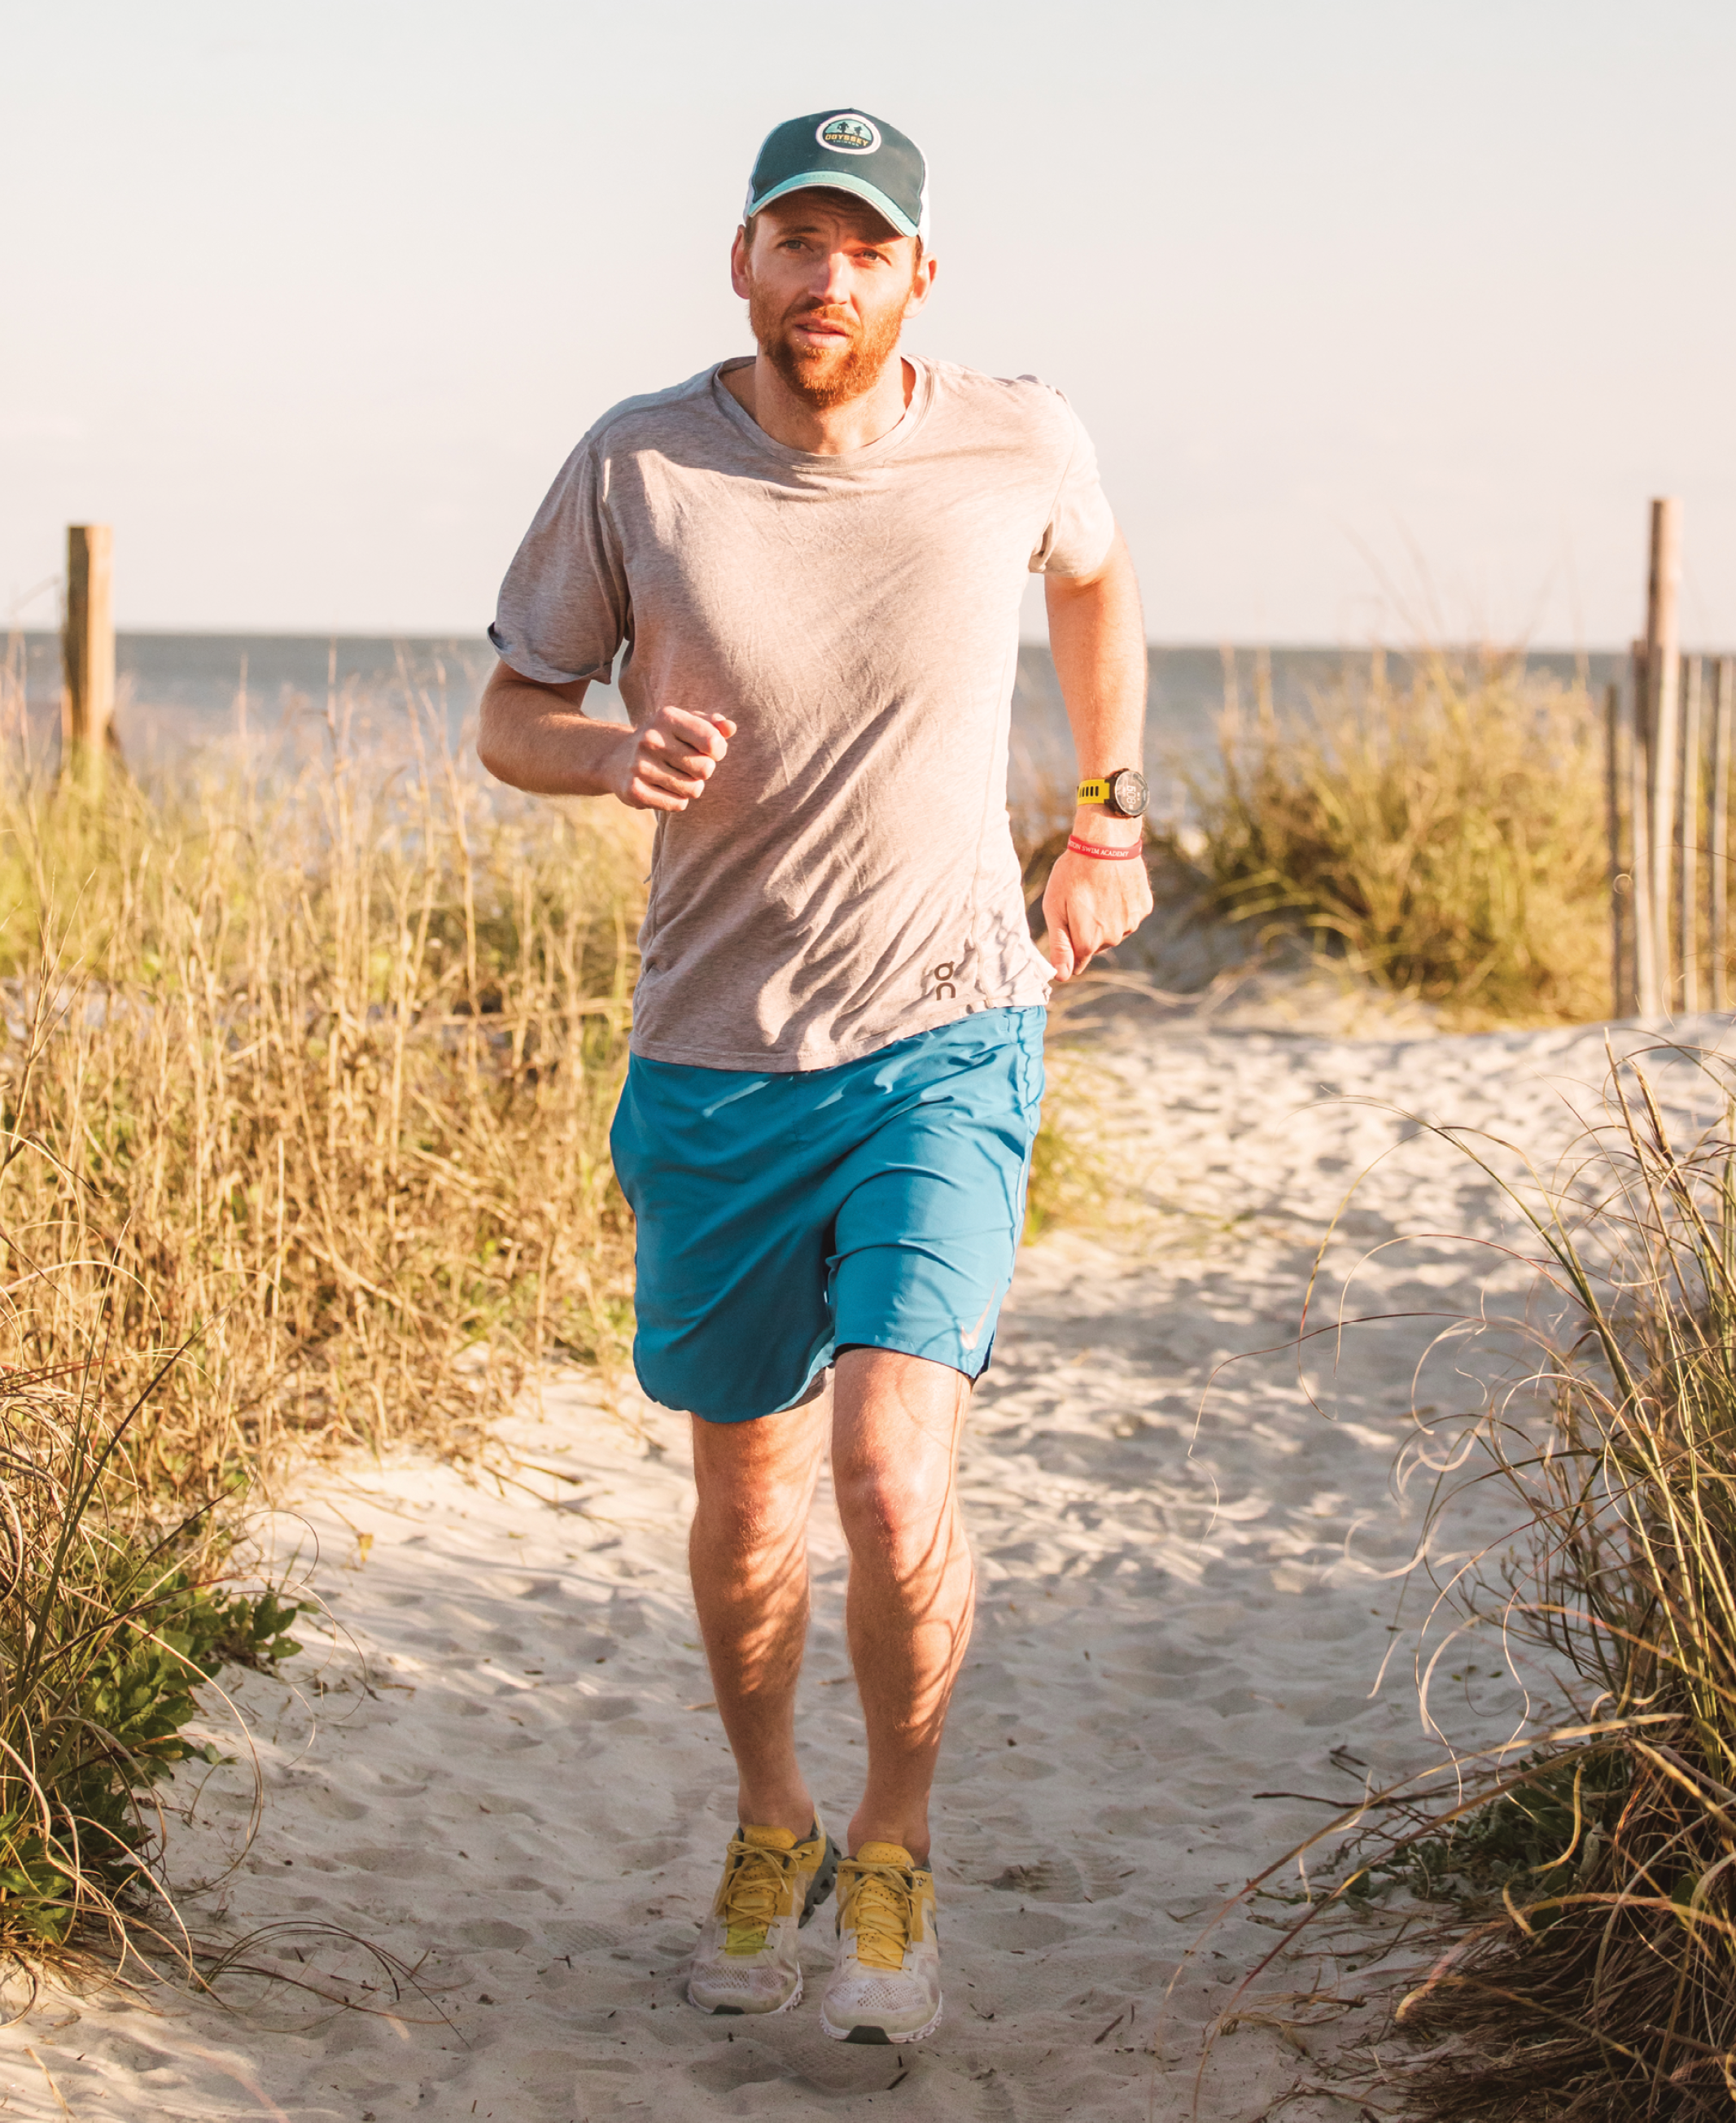 """It was extremely frustrating to not be able to run—it's my mental release during busy days,"" says James Island resident Will Ramsey. ""I'm grateful Dr. Schoderbek could give me an answer and help create a plan to heal."""